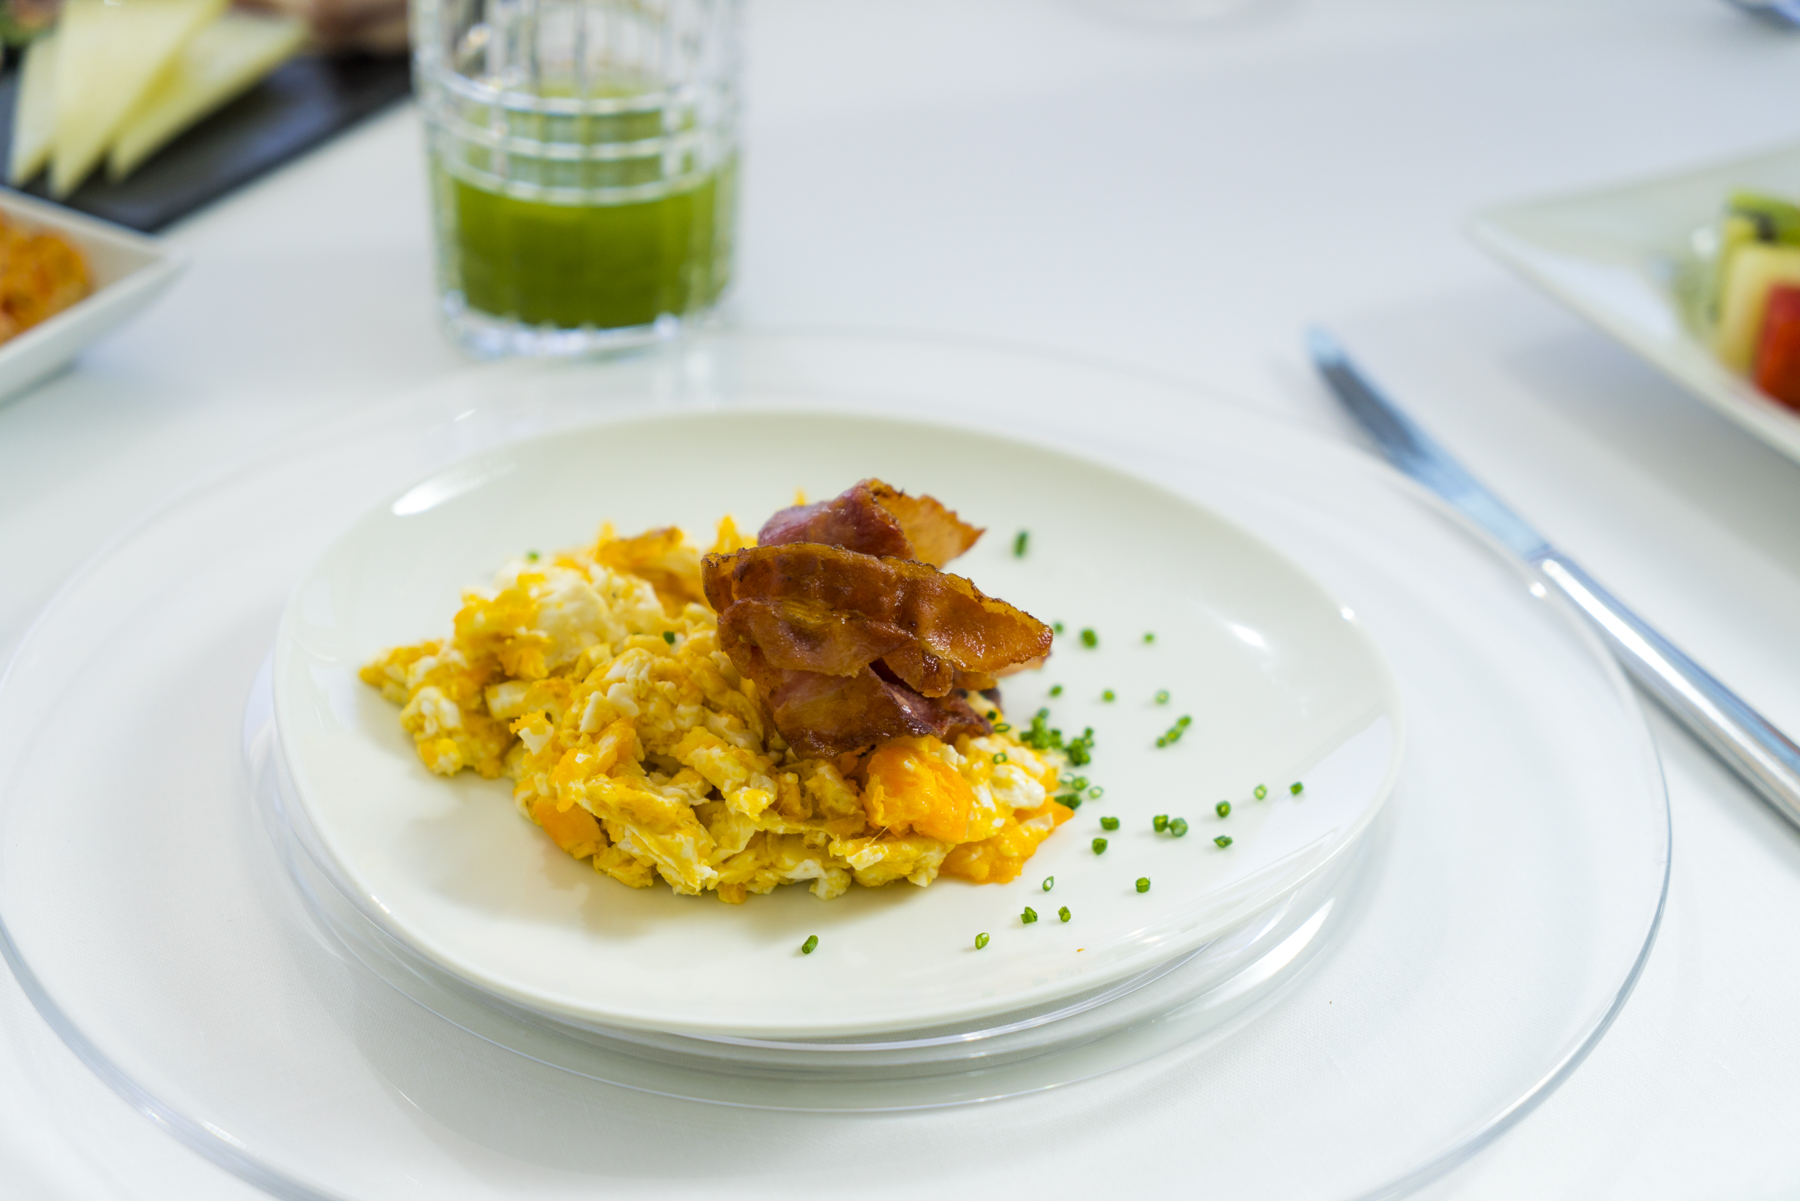 Scrambled egg with bacon and cheddar